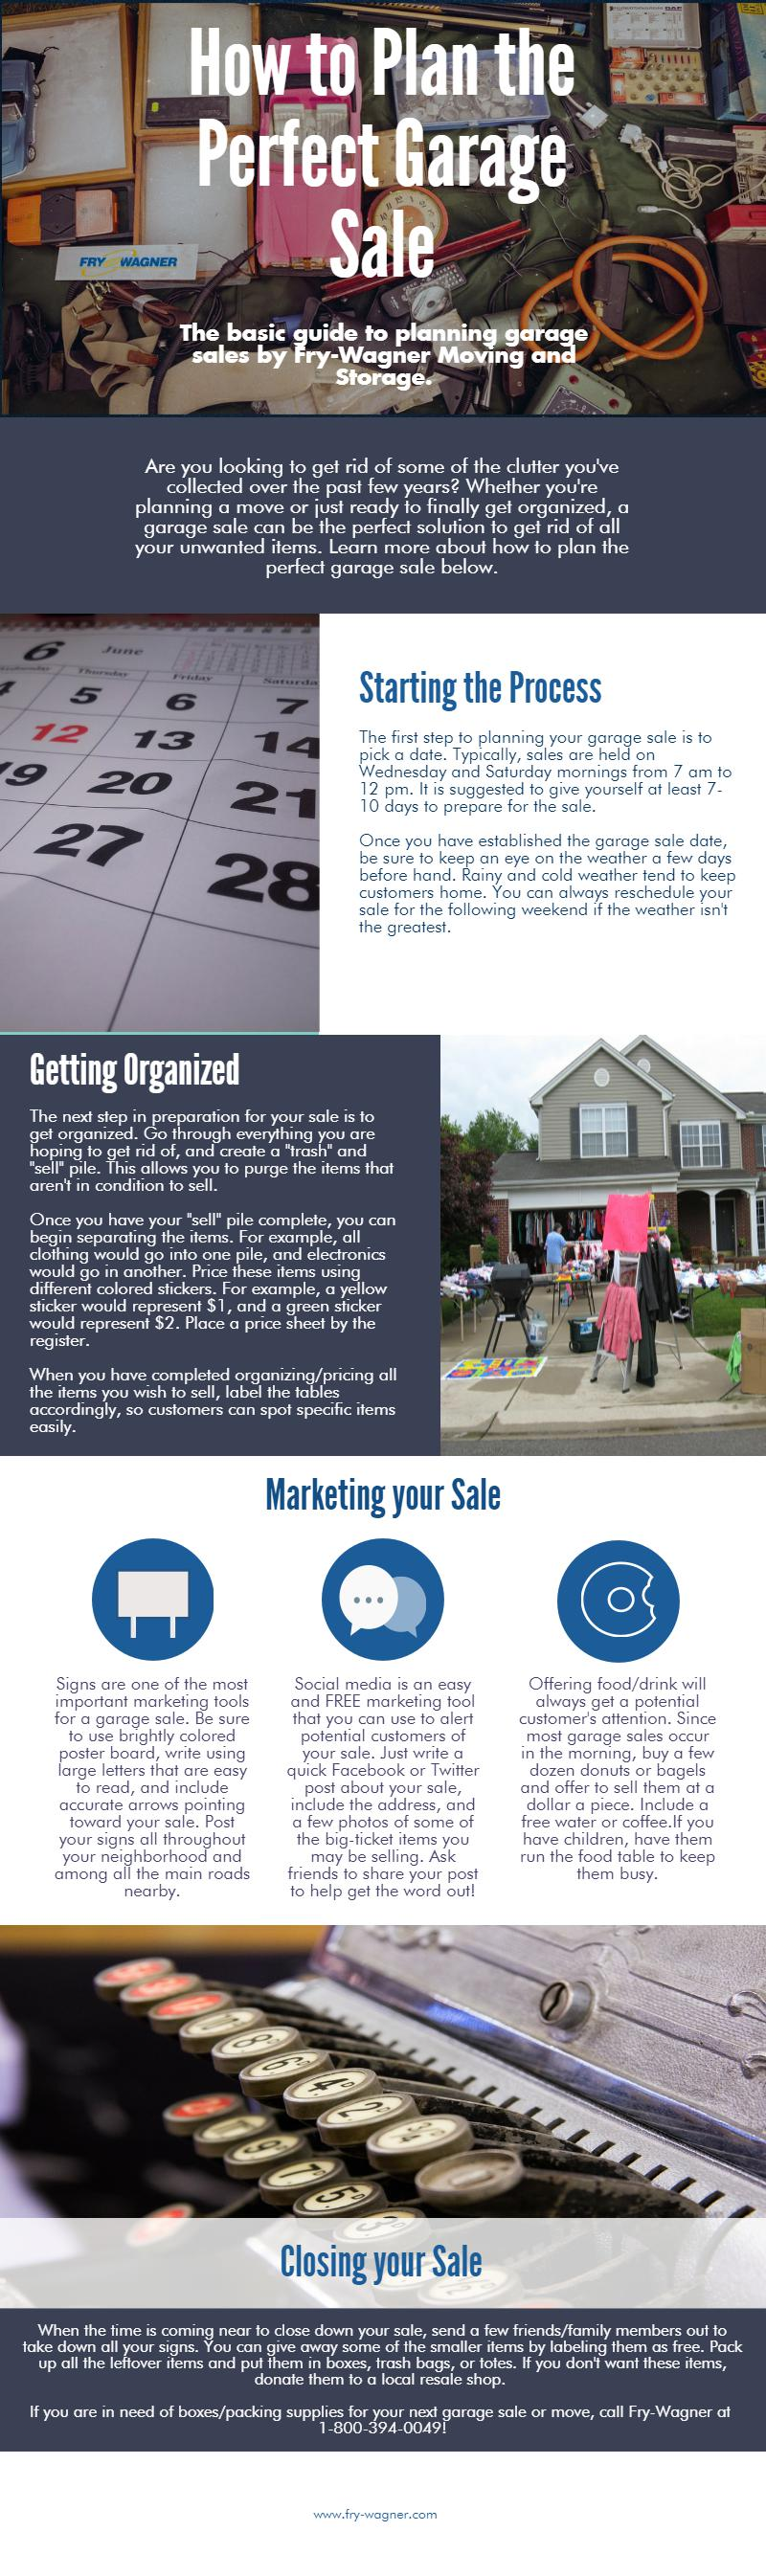 Planning A Garage Sale Can Be A Daunting Task Especially If You Don T Sell As Much As You Wanted To Follow This Sim Garage Sales Household Moving How To Plan